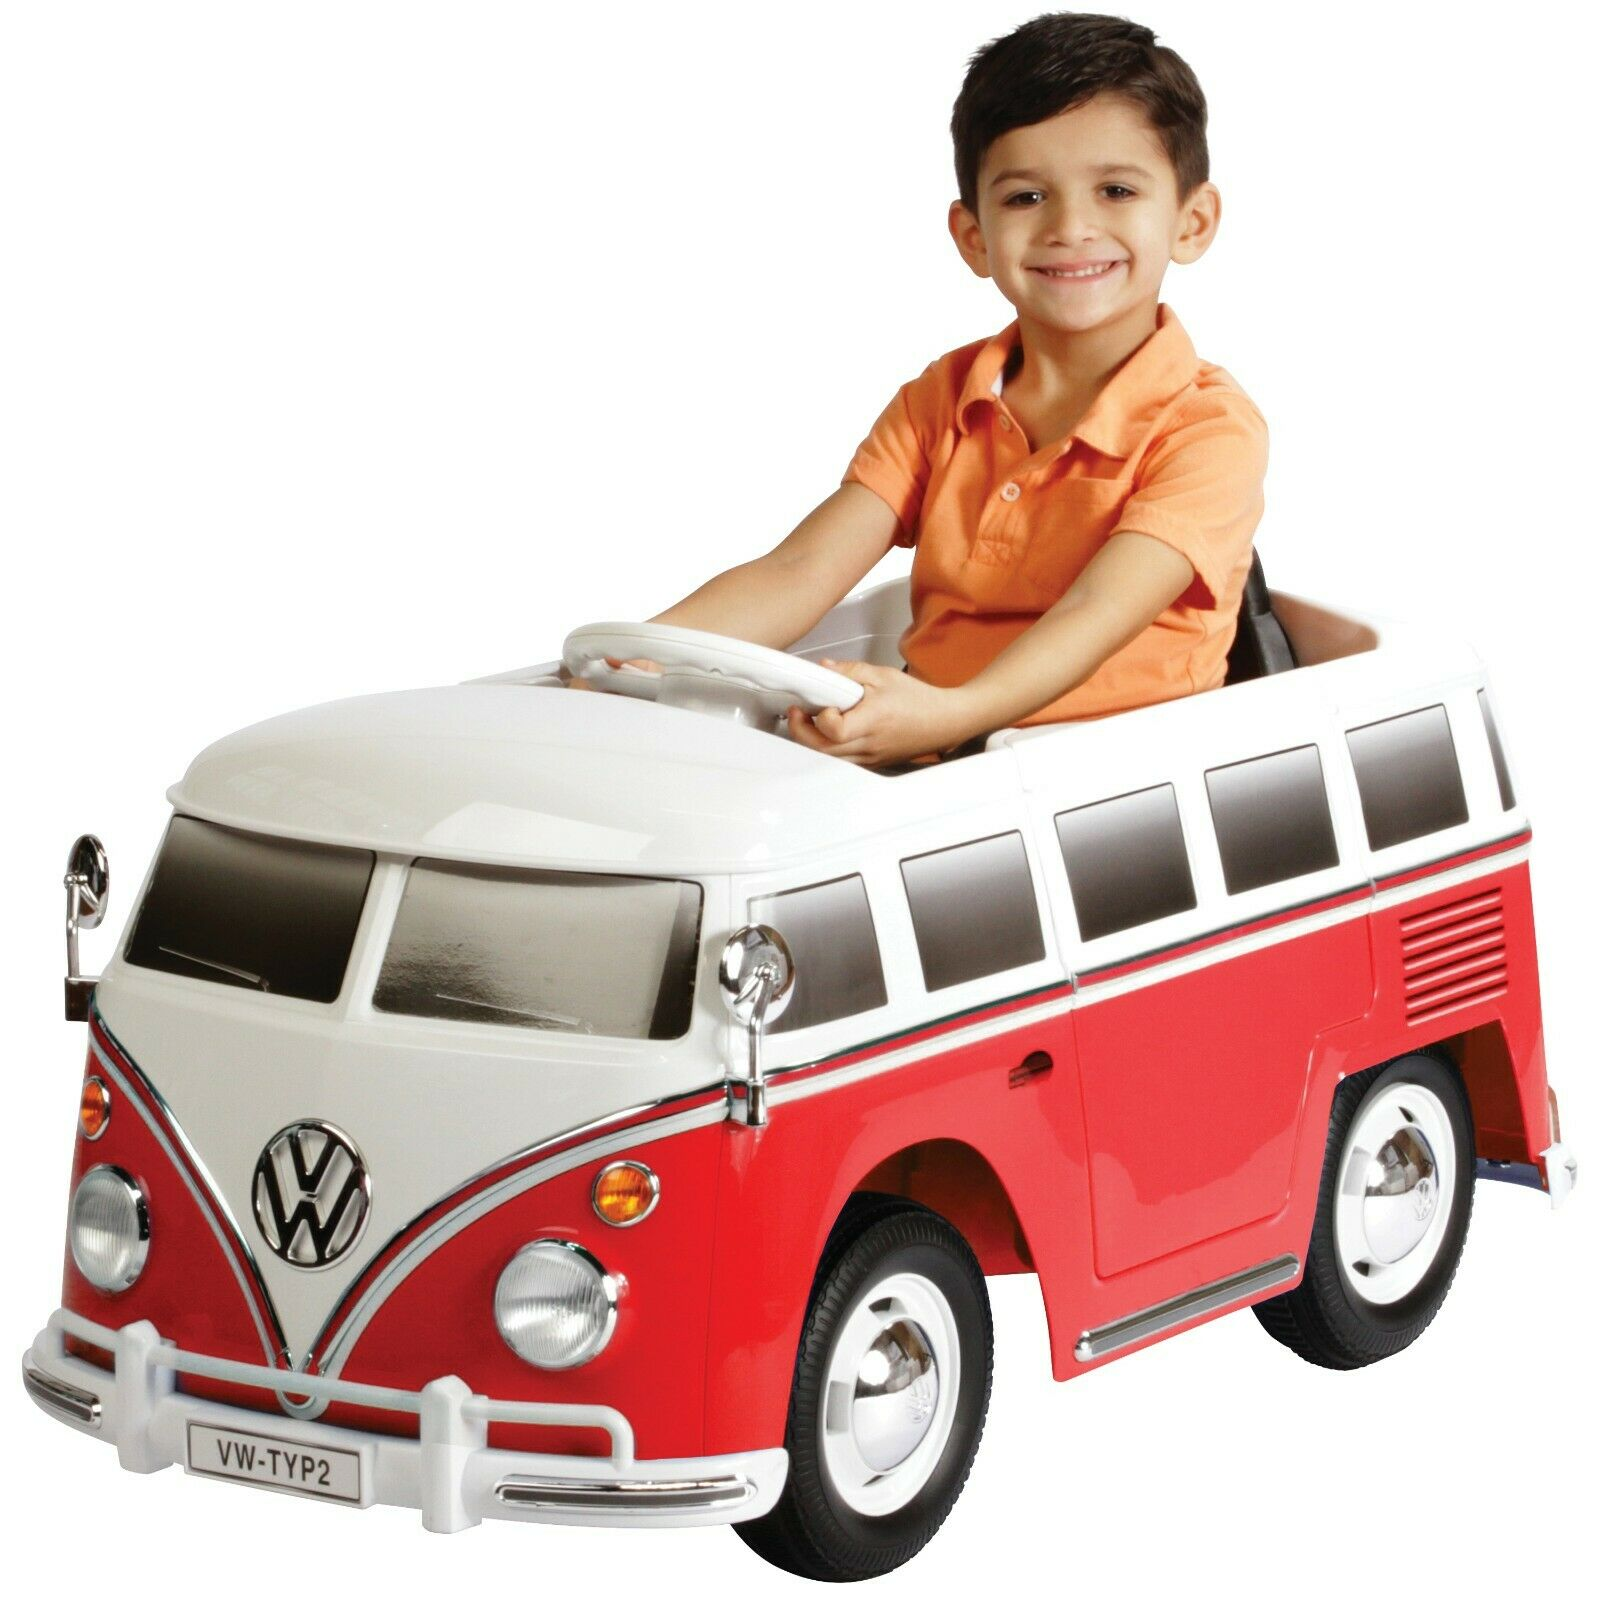 Rollplay 24 Volt Turnado Ride On Toy Battery-Powered Kids Ride On